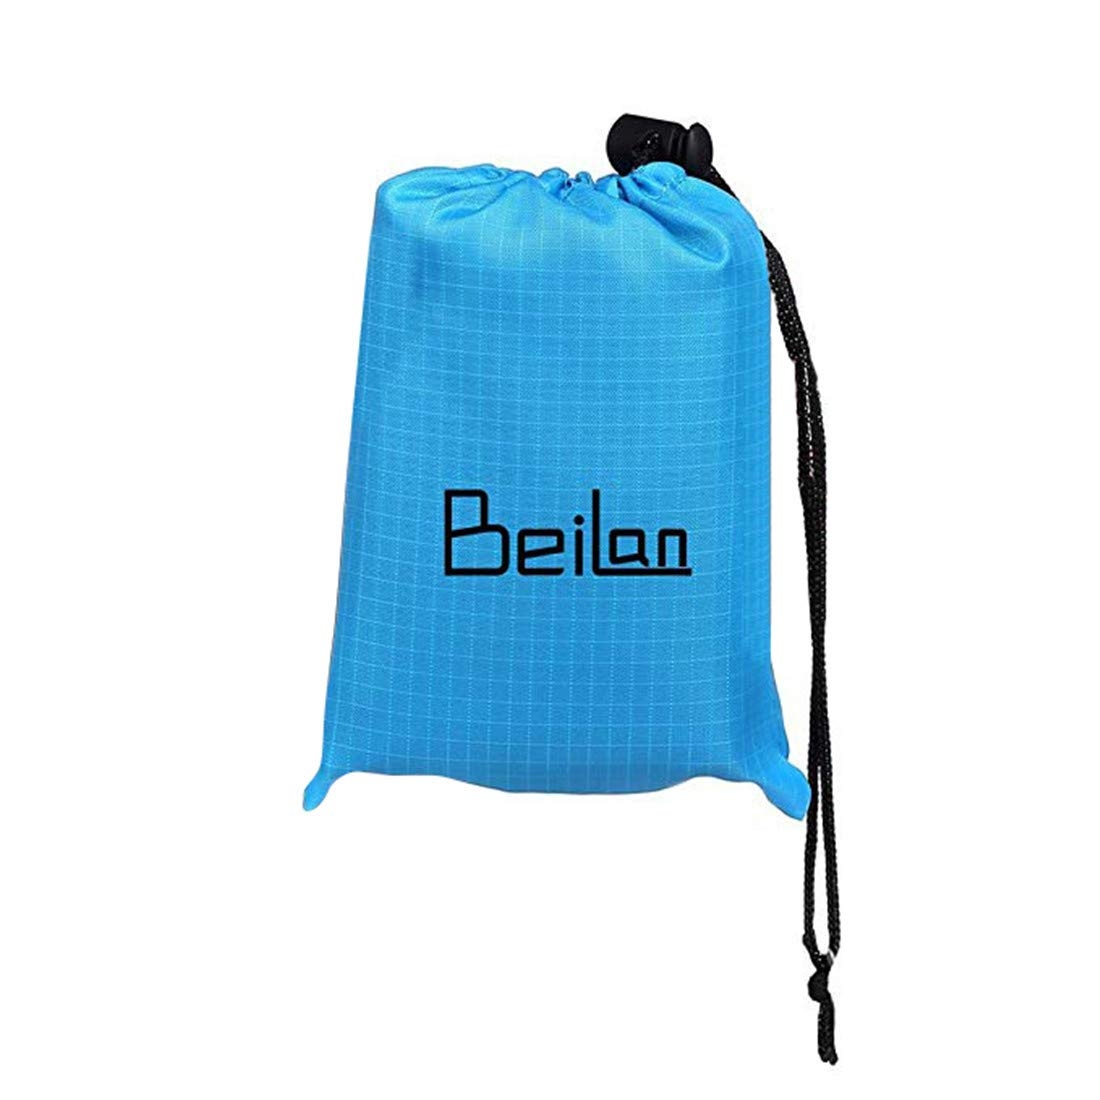 BeiLan Portable Picnic Blanket Durable Lightweight Waterproof Sand Proof Beach Camping Travel Mat with Carry Bag for Outdoors Activities (140 * 152cm, Blue & Black) ODS-220